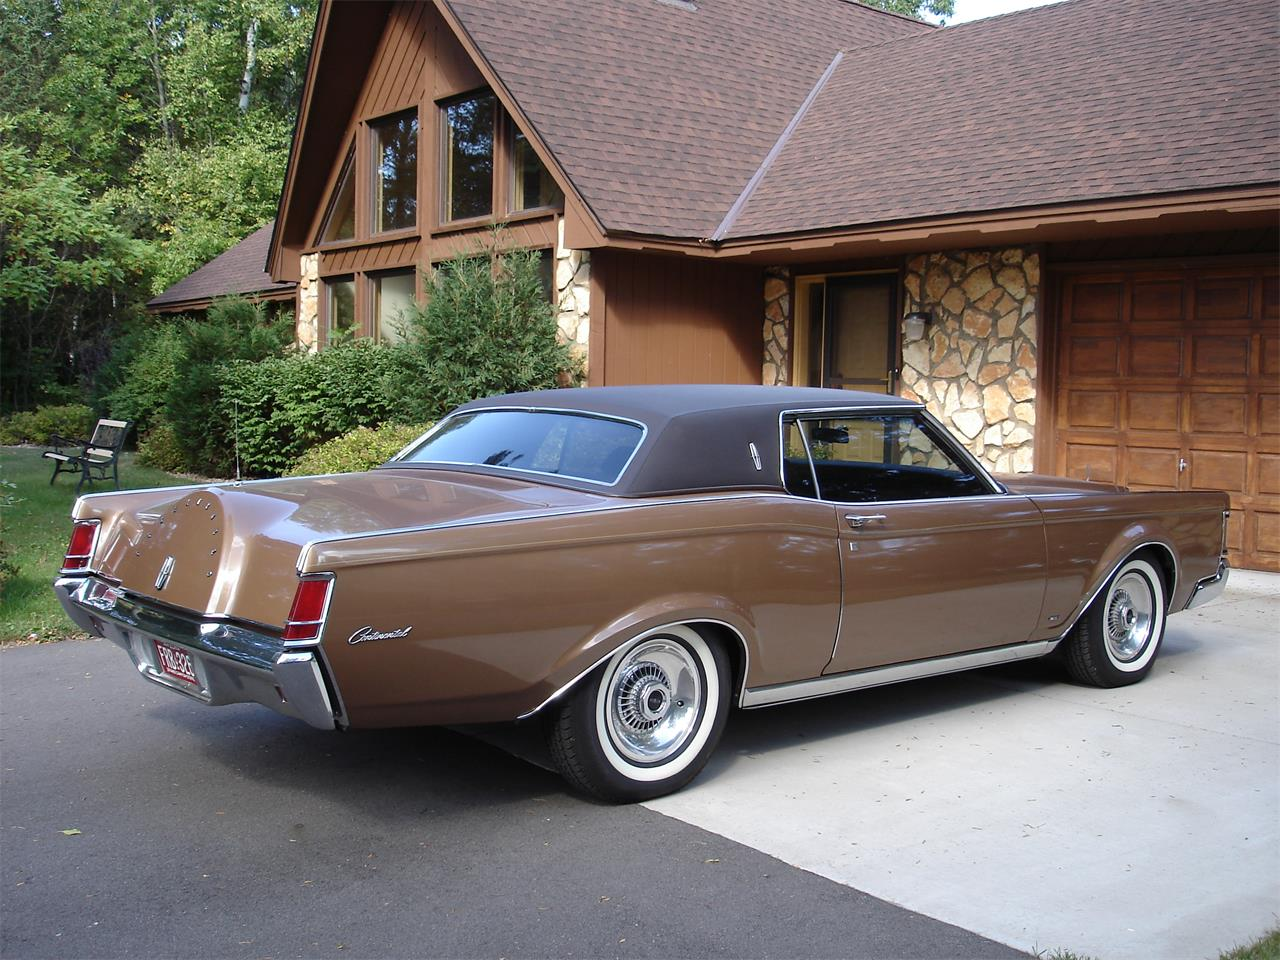 1971 Lincoln Continental Mark III (CC-1113538) for sale in Roseville, Minnesota